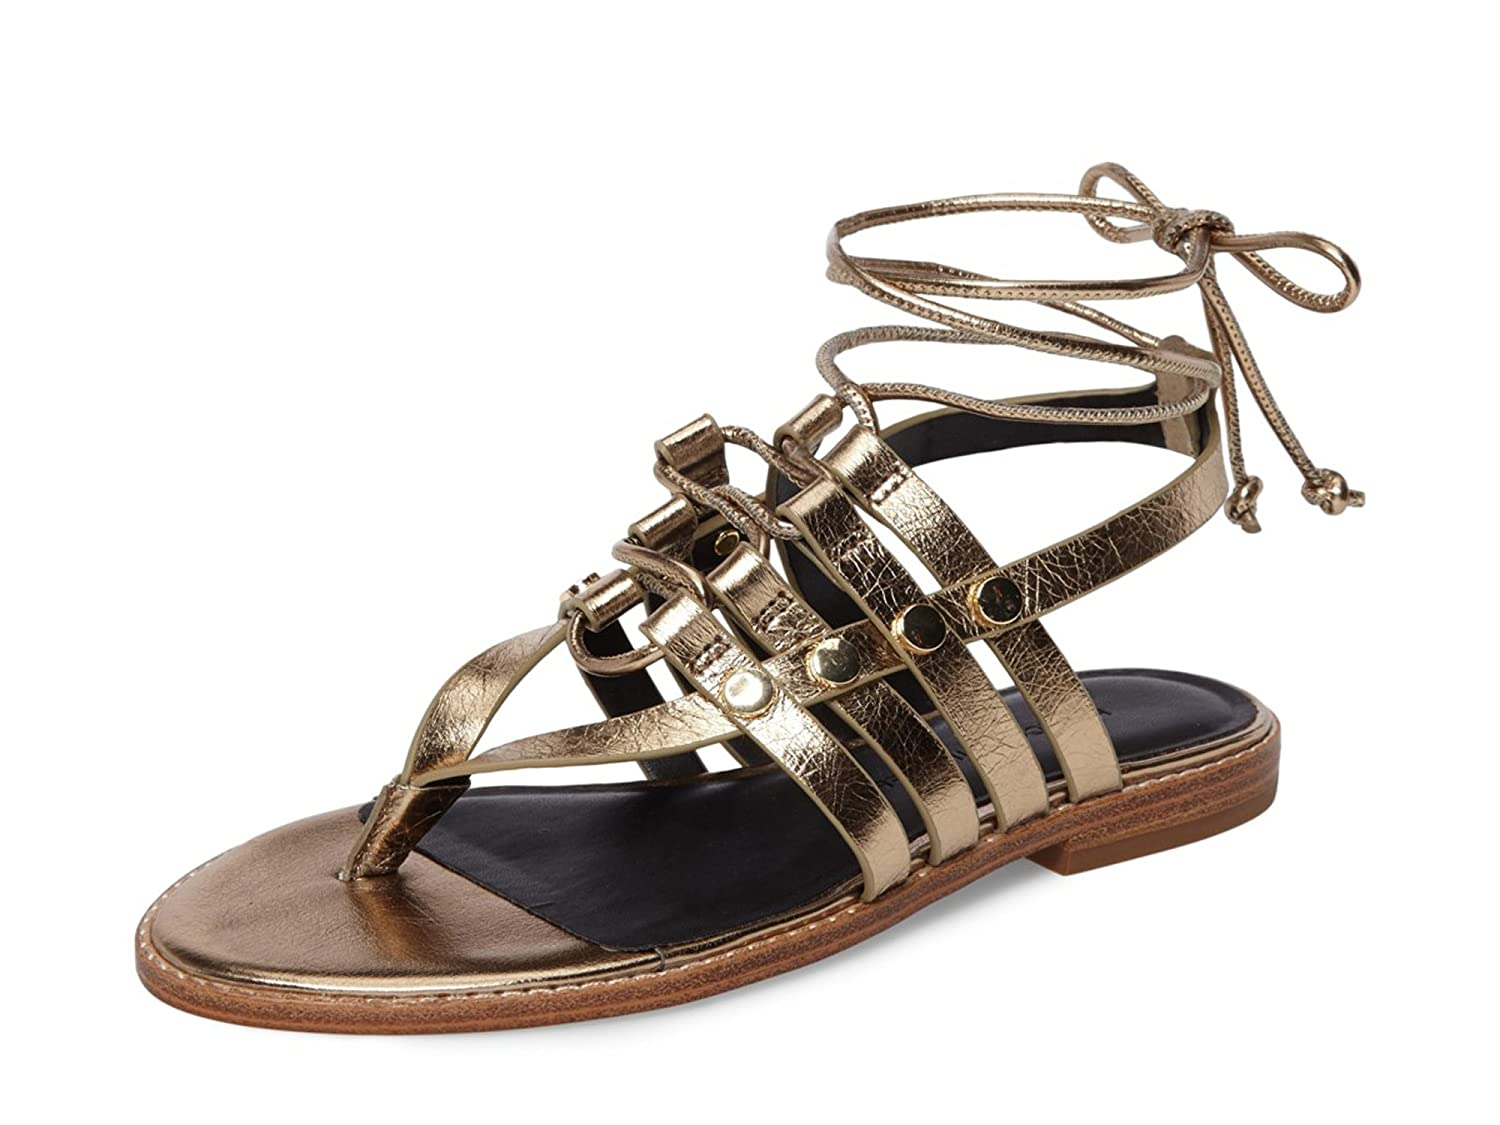 Women's Evonne Gold Lace-Up Sandals by Rebecca Minkoff - DeluxeAdultCostumes.com